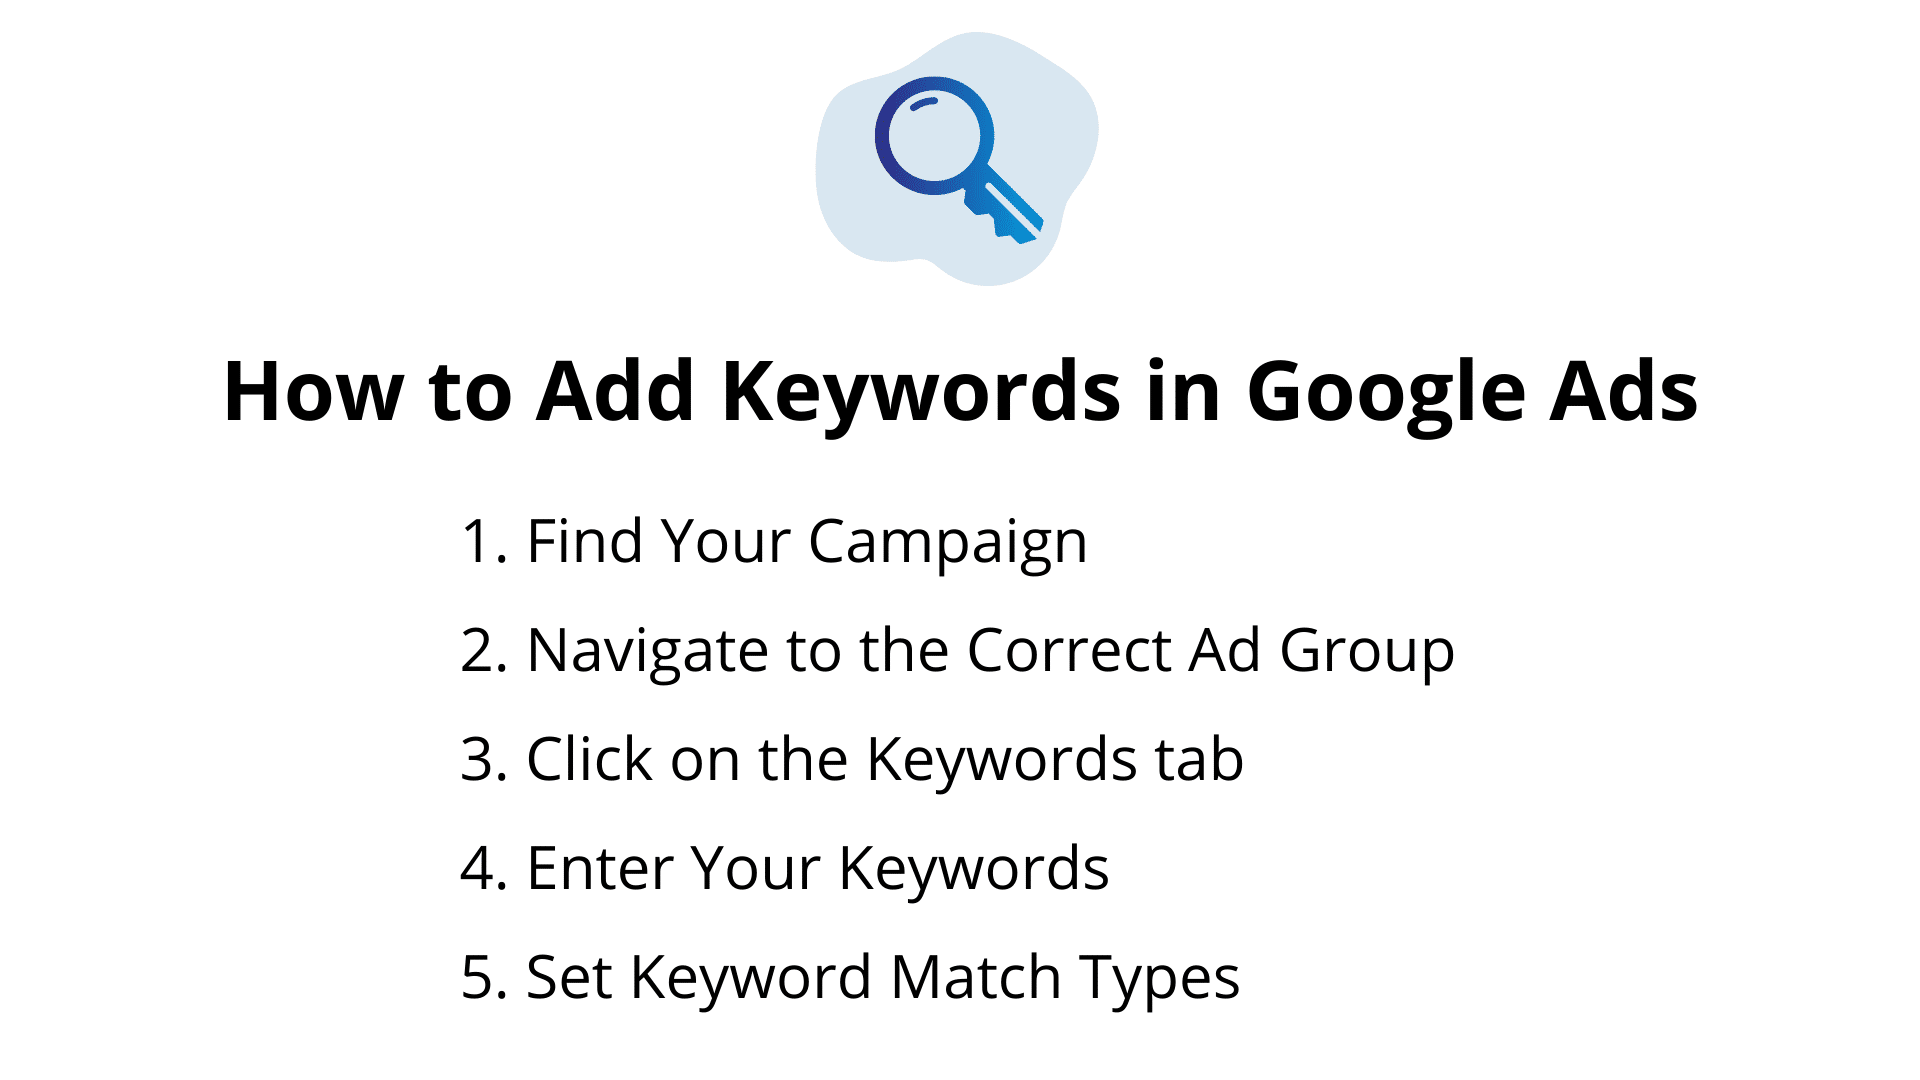 How to Add Keywords in Google Ads